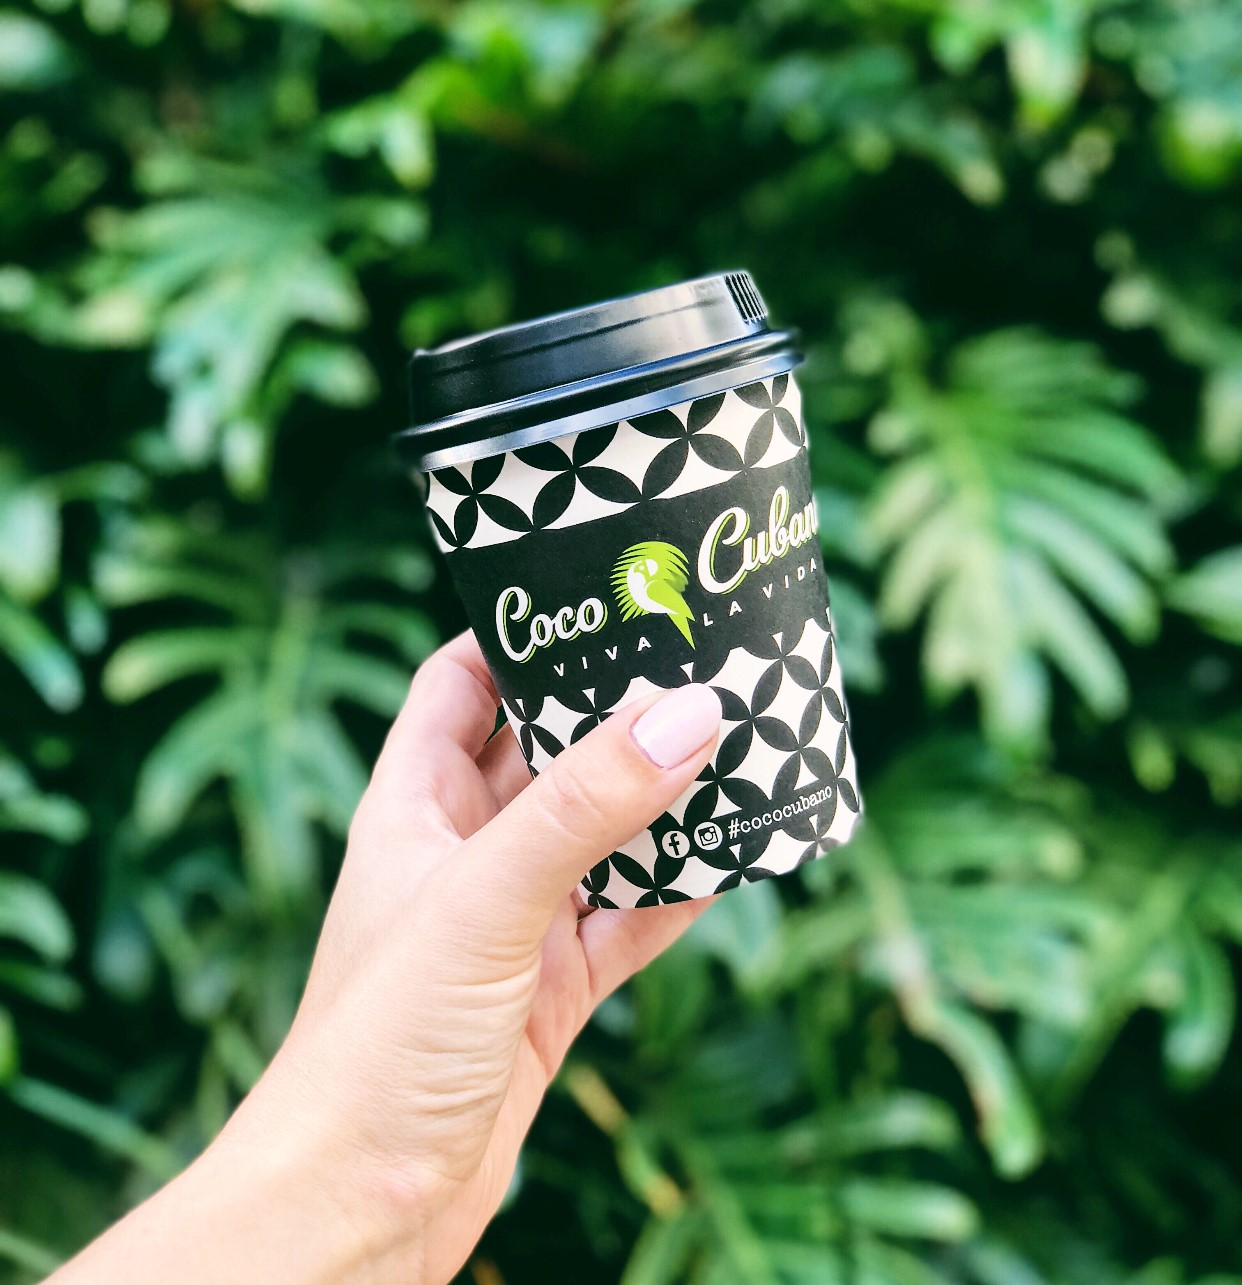 Coffee / Cafe Business for sale - new locations. Franchise oppourtunity. Perth